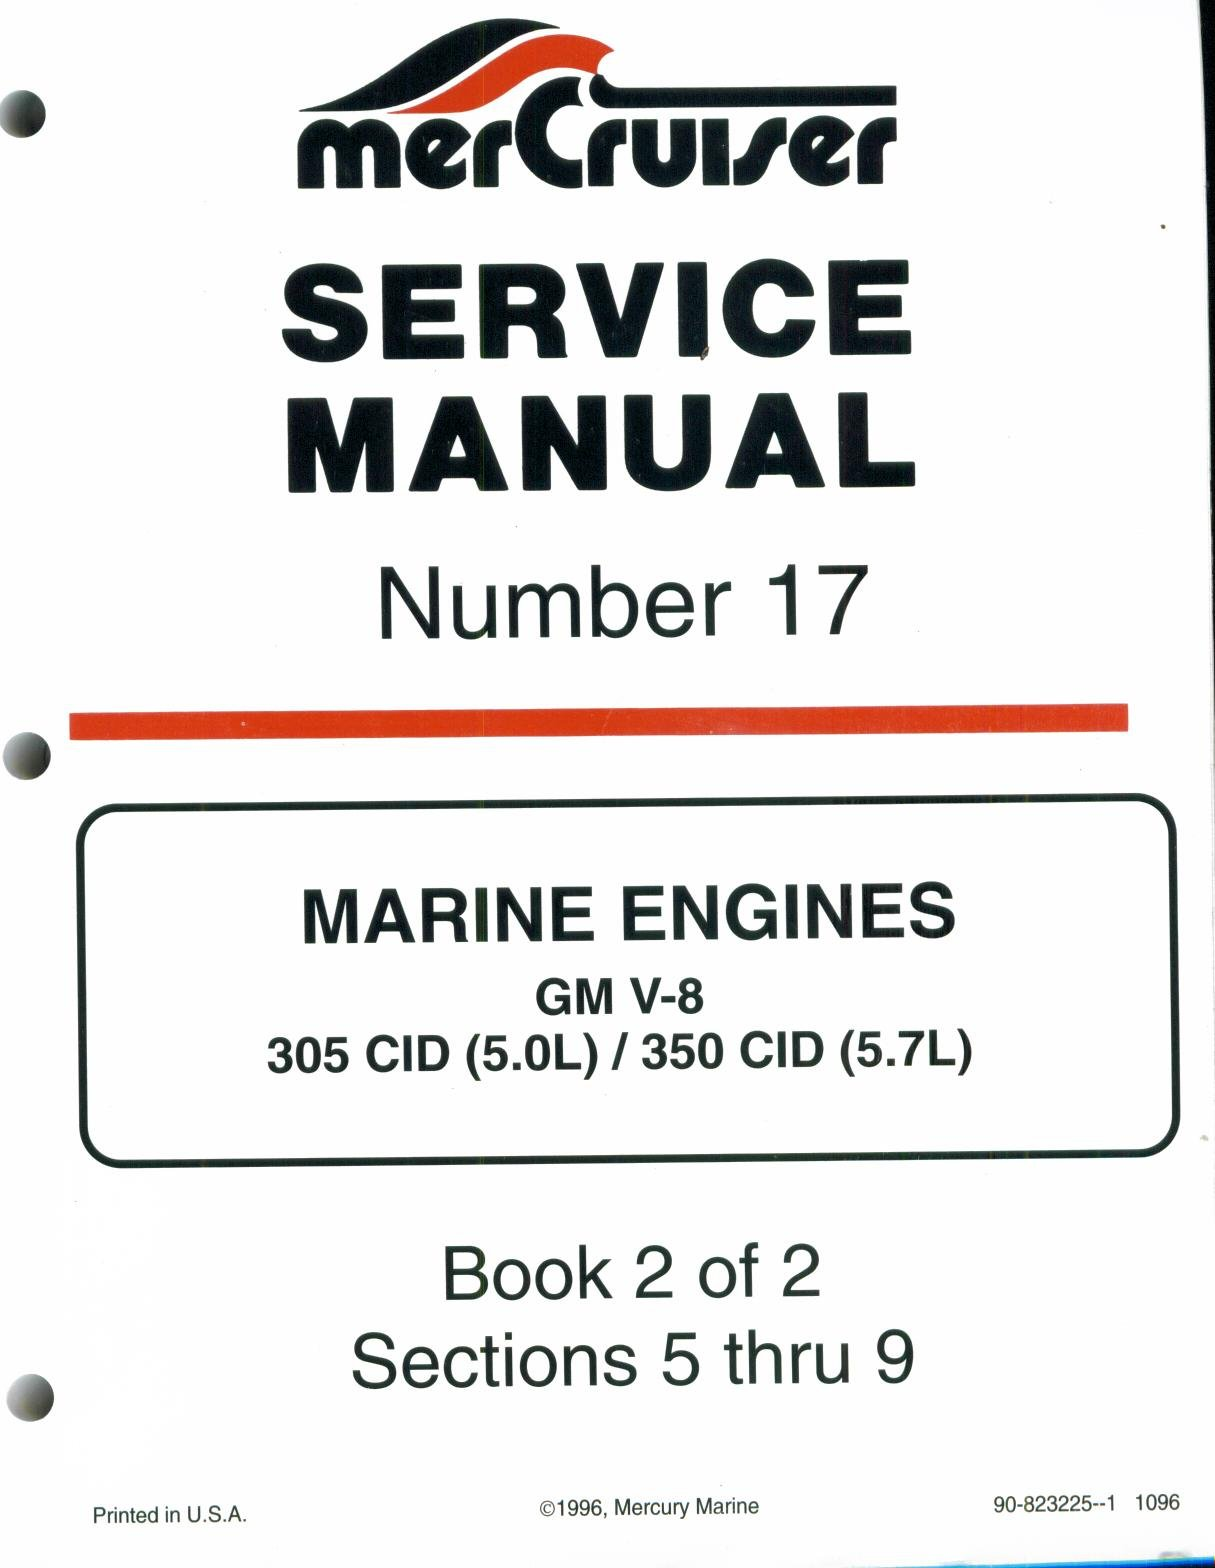 mercruiser service manual number 17 marine engines gm v 8 305 cid rh amazon com Mercruiser 5.7L MPI 5.7L Mercruiser Specifications